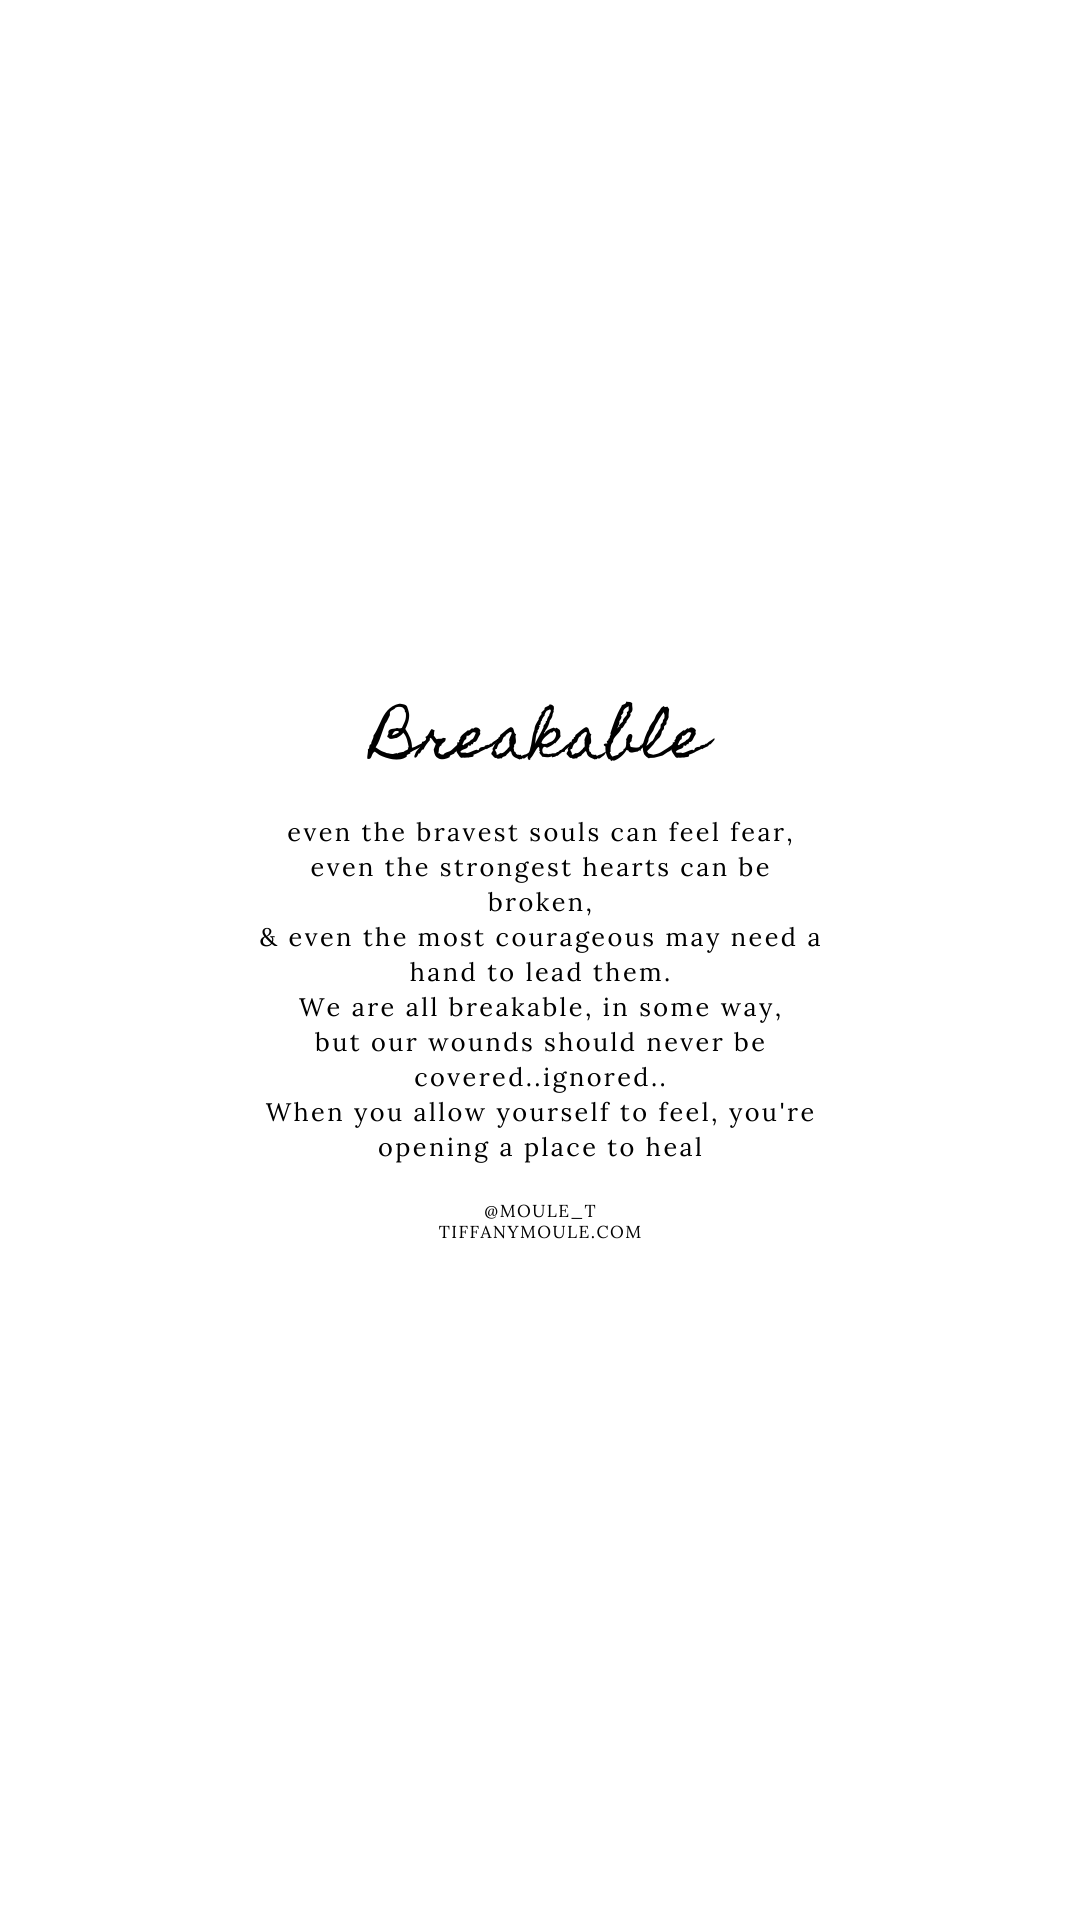 You a breakable and that's completely okay